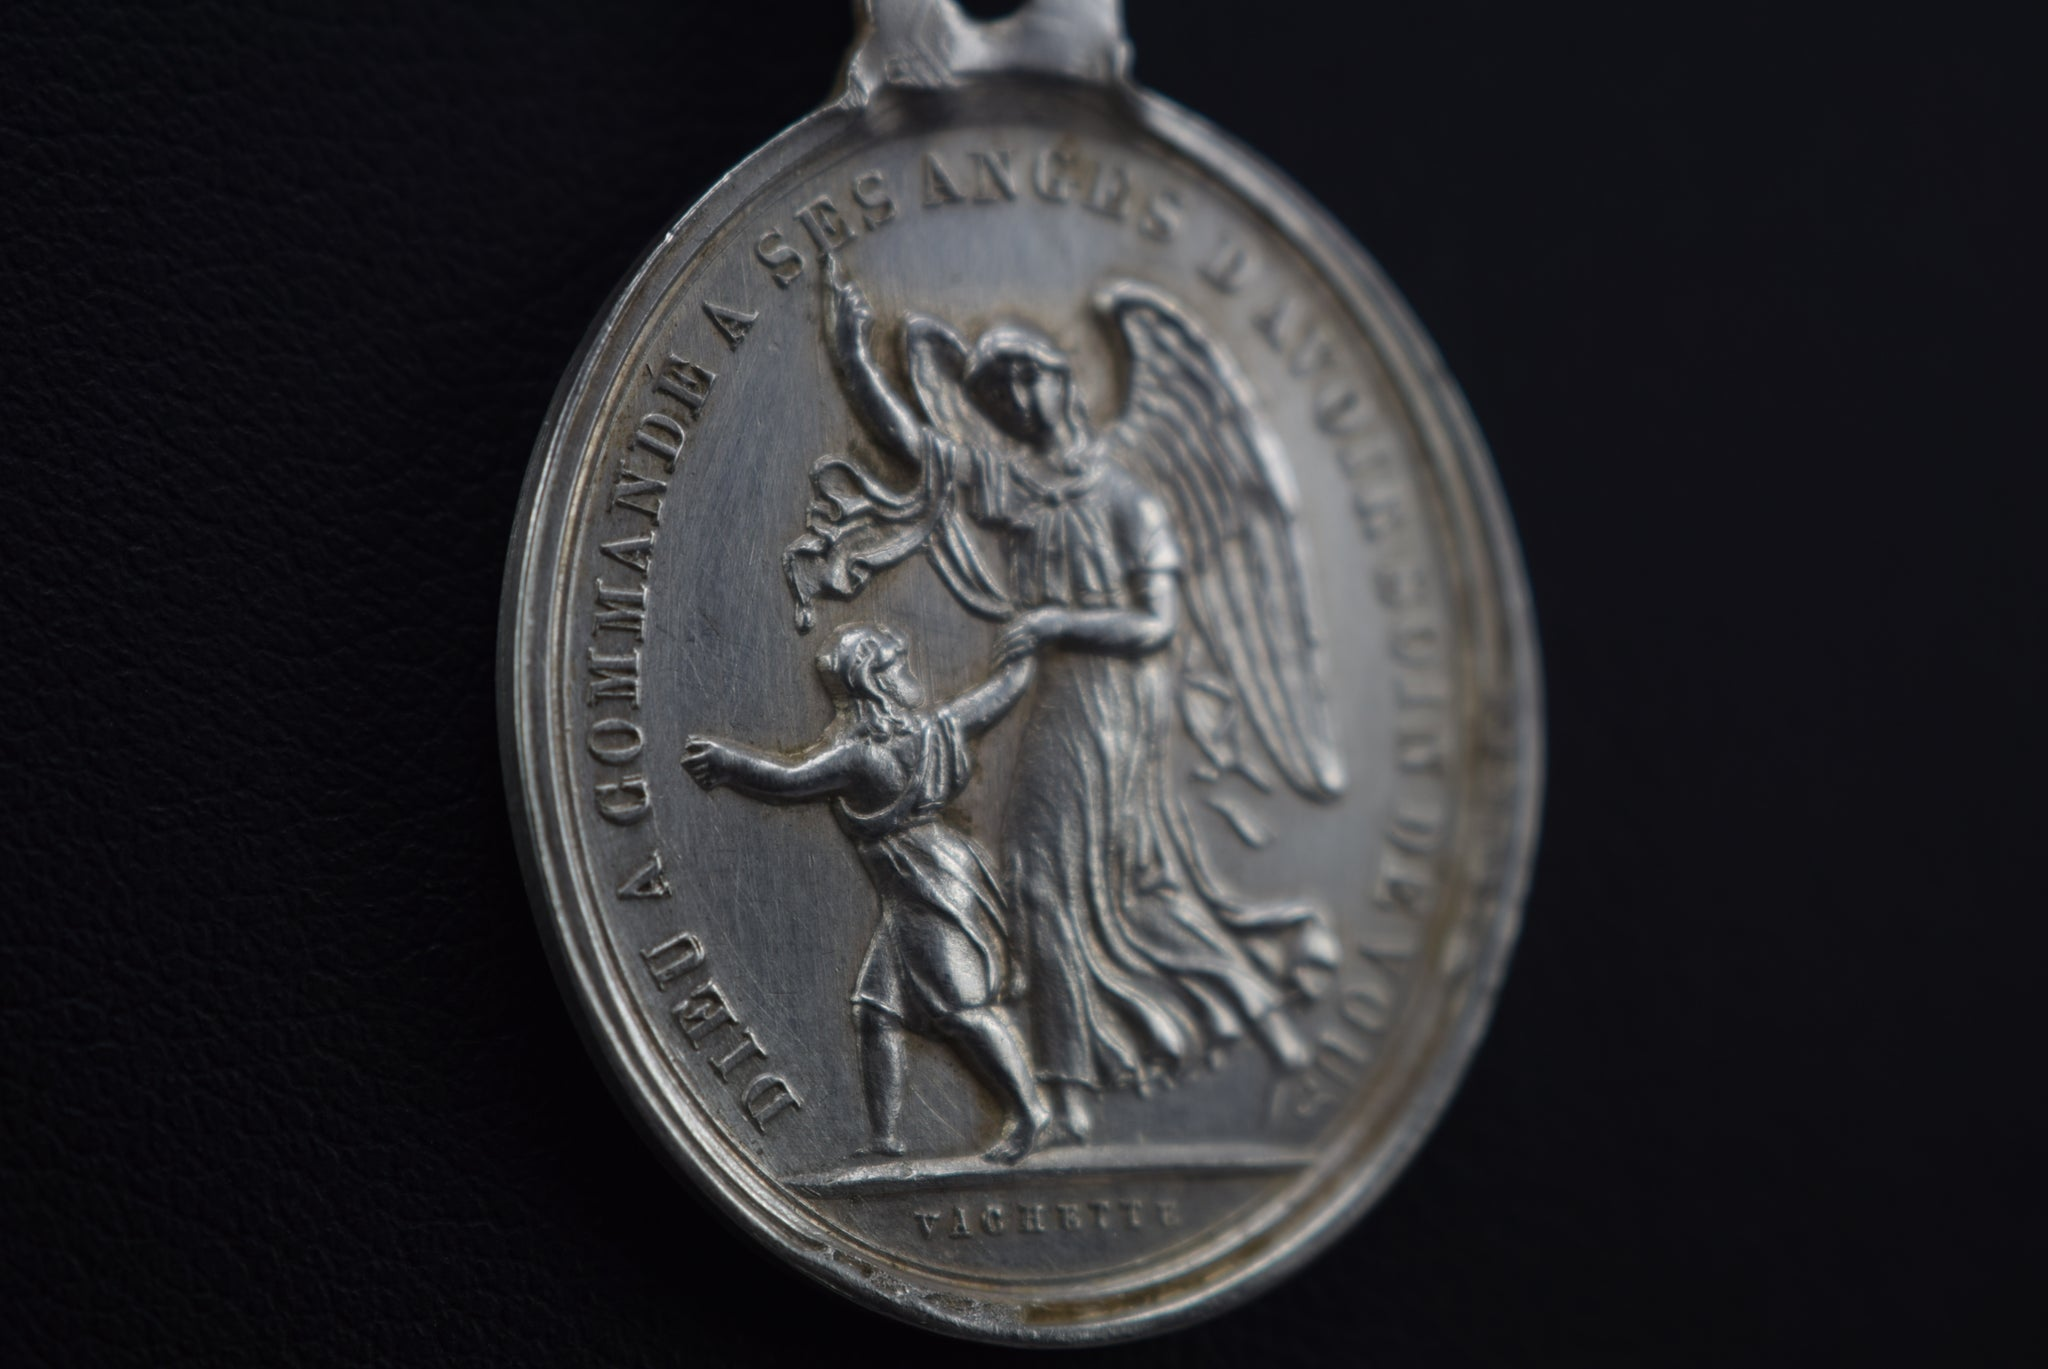 Vachette Guardian Angel Medal - Charmantiques